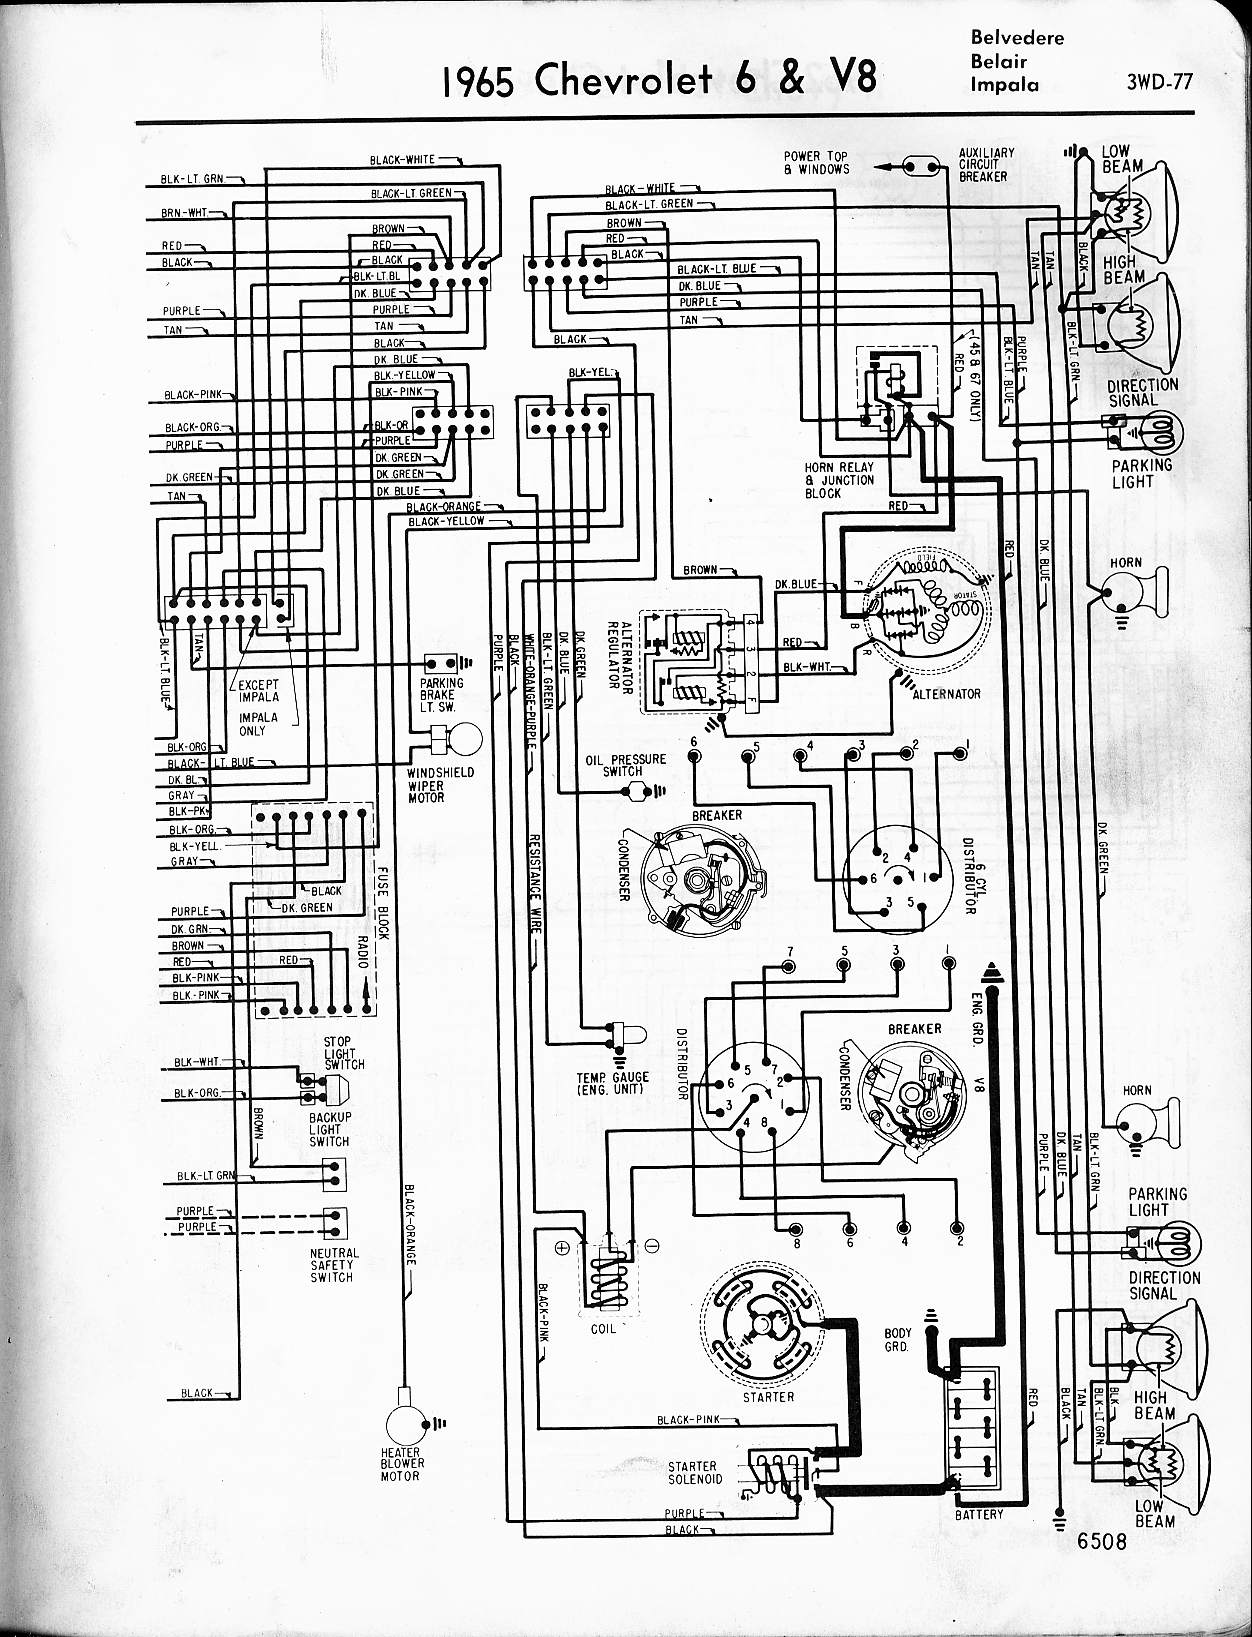 57 65 chevy wiring diagrams 1965 chevy c10 wiring diagram 1965 6 & v8  biscayne,